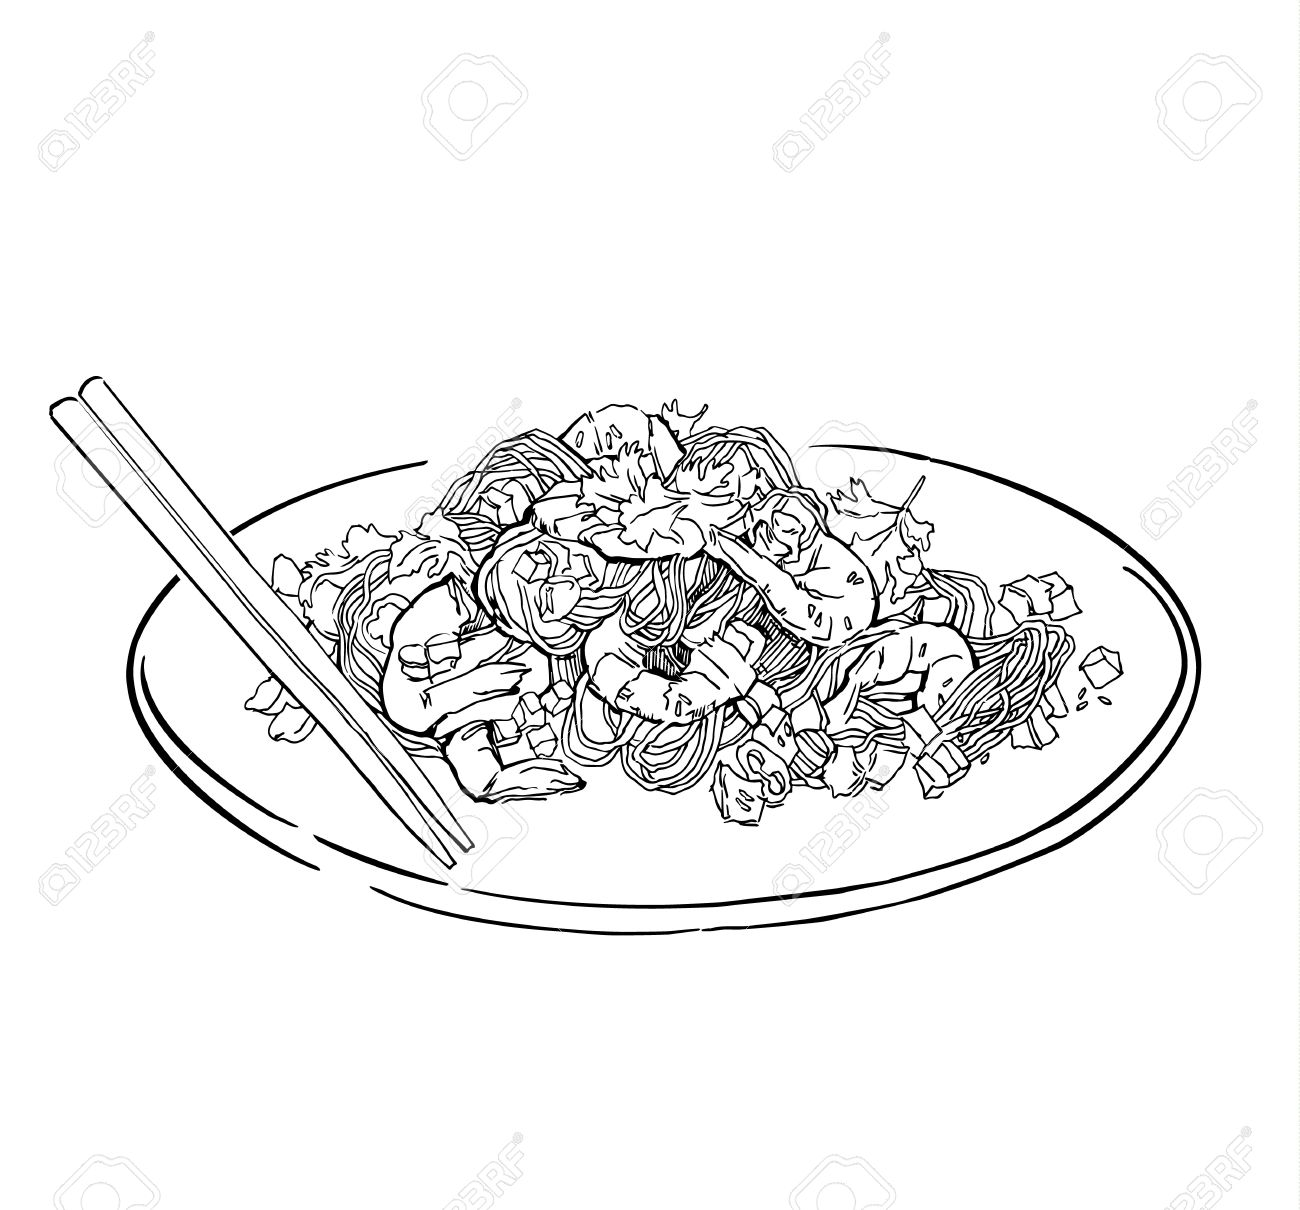 1300x1210 Vector Sketch Of Spaghetti Plate. Italian Food Draw. Isolated